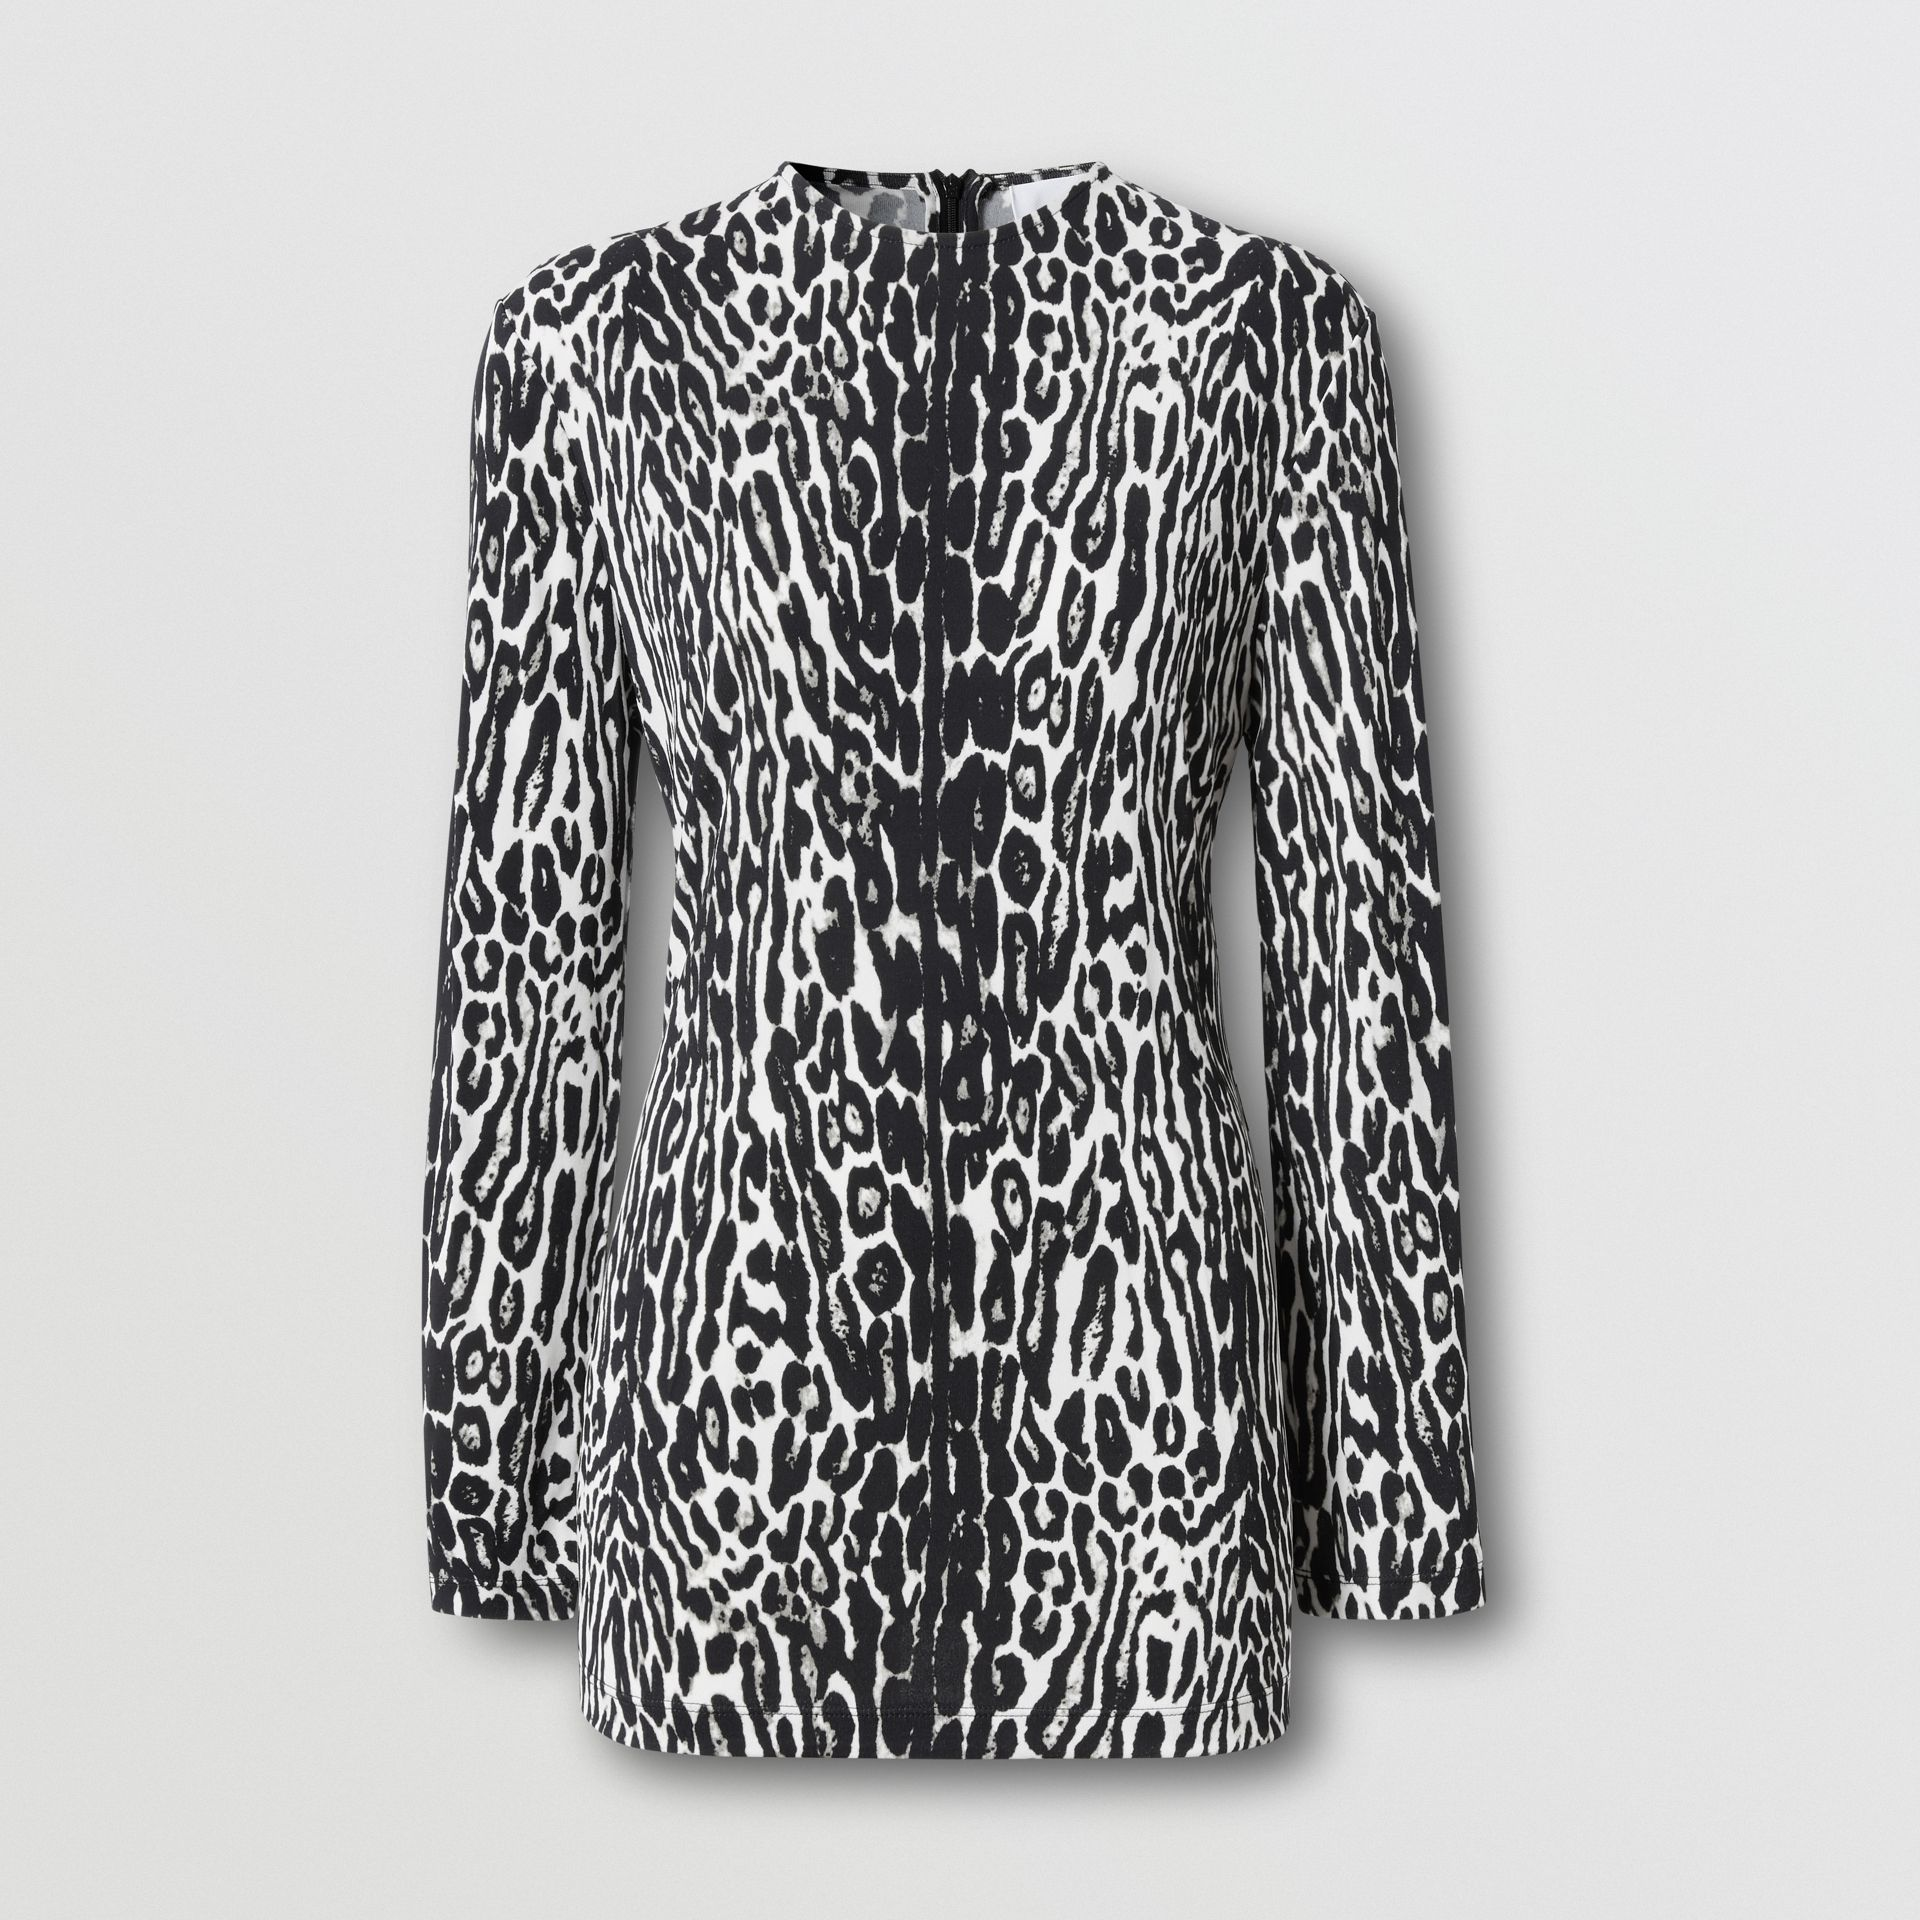 Long-sleeve Leopard Print Stretch Jersey Top in Black - Women | Burberry - gallery image 3